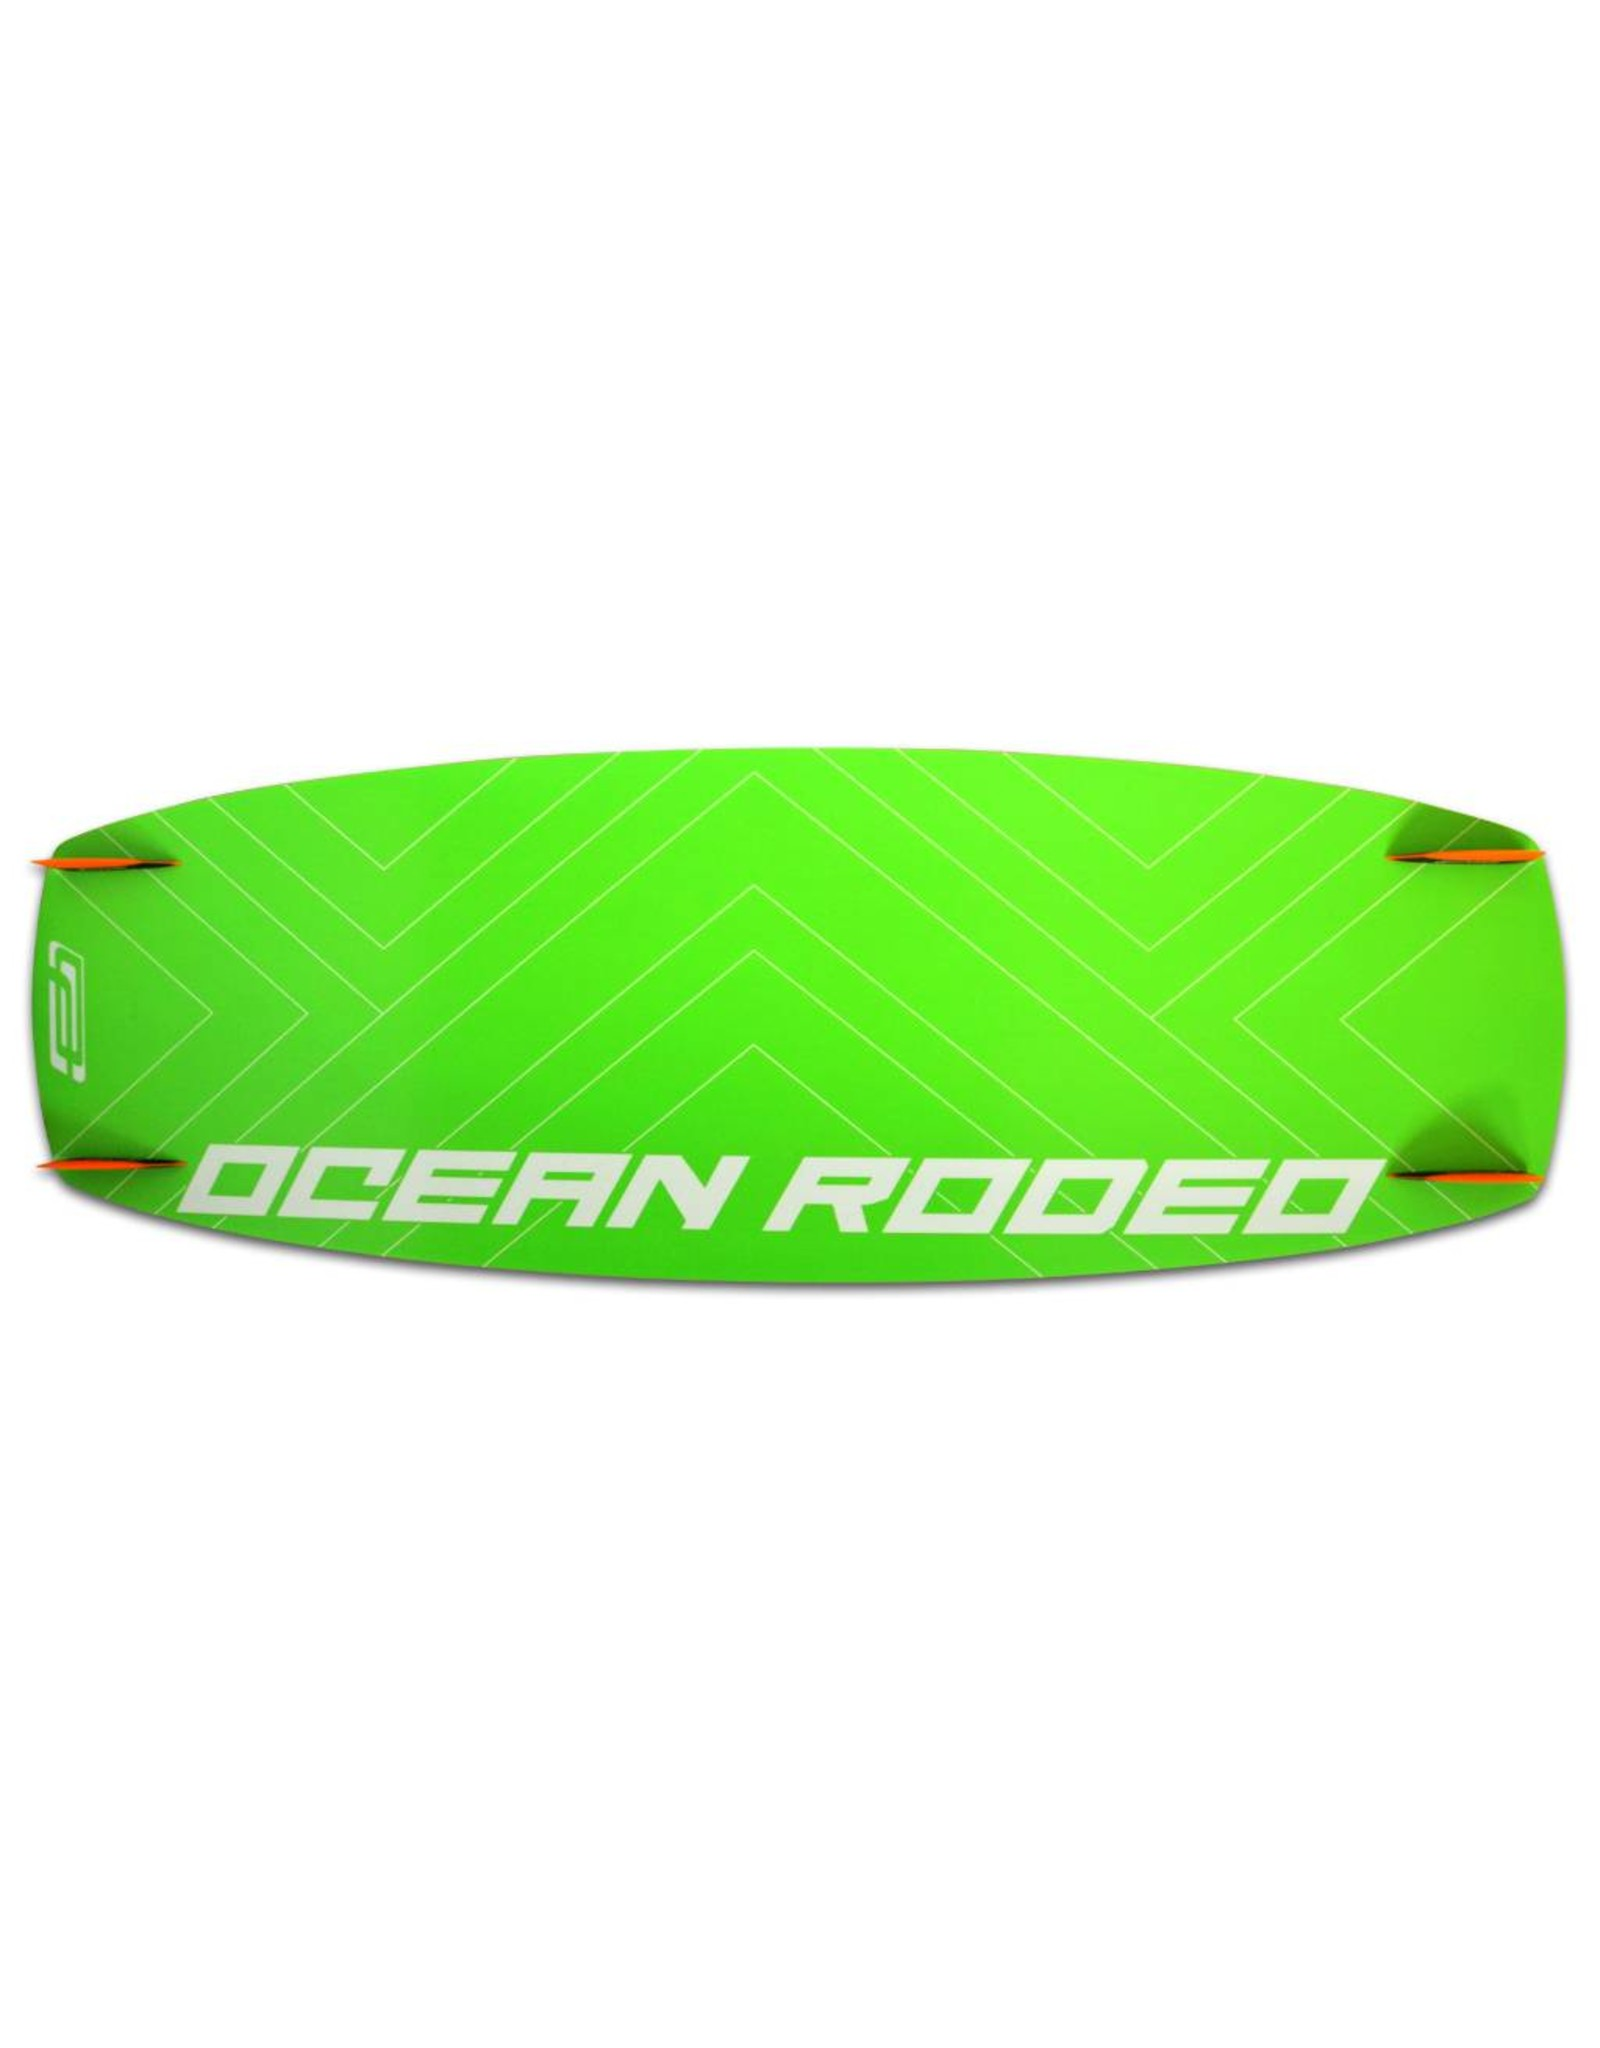 Ocean Rodeo Orgin, 142cm - Purple / Orange